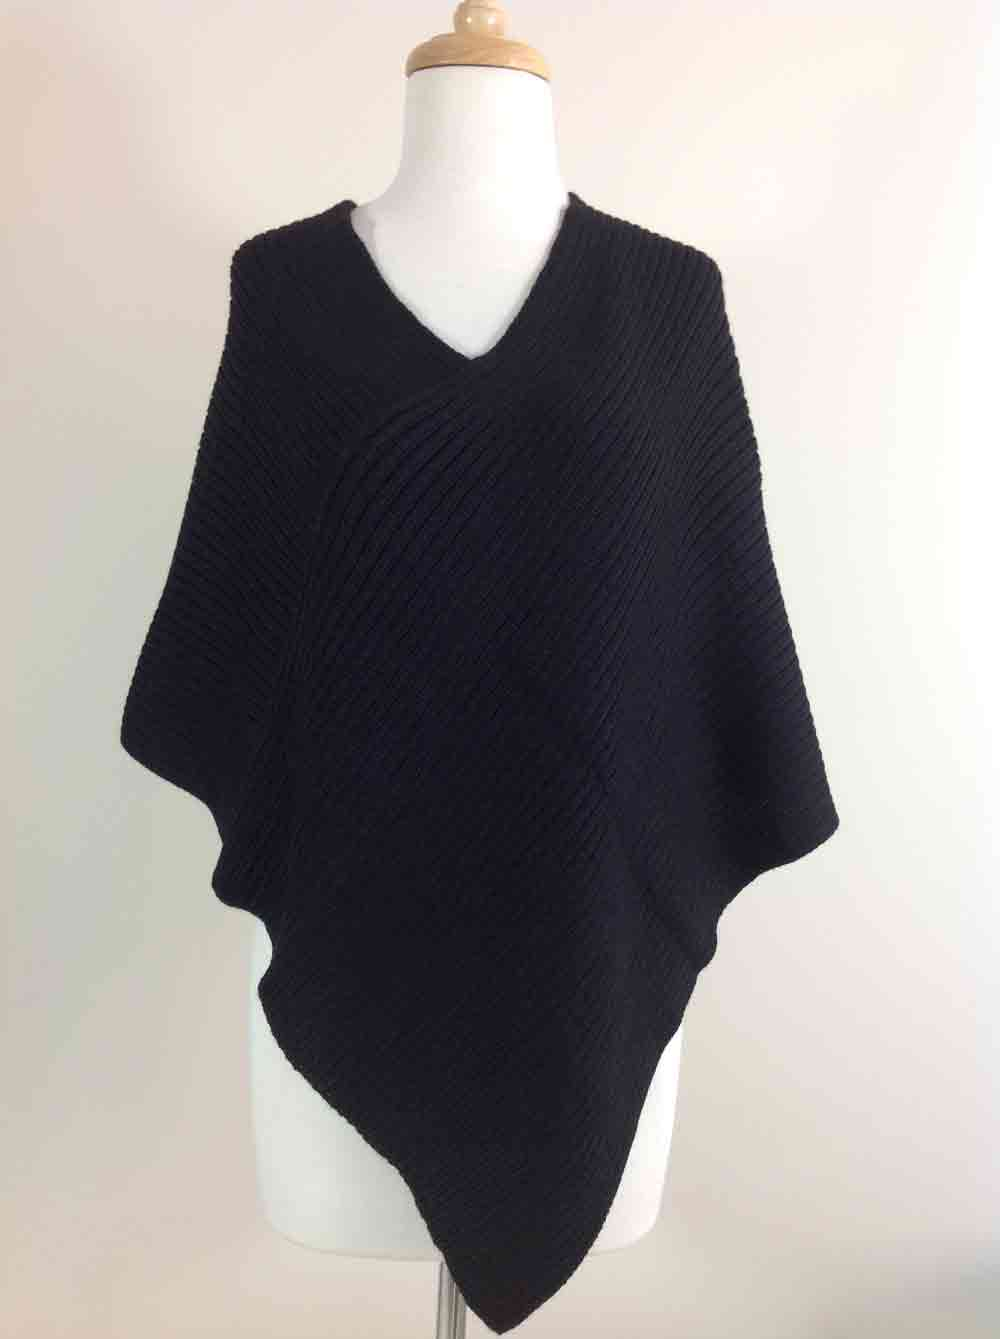 Ribbed Poncho - Black